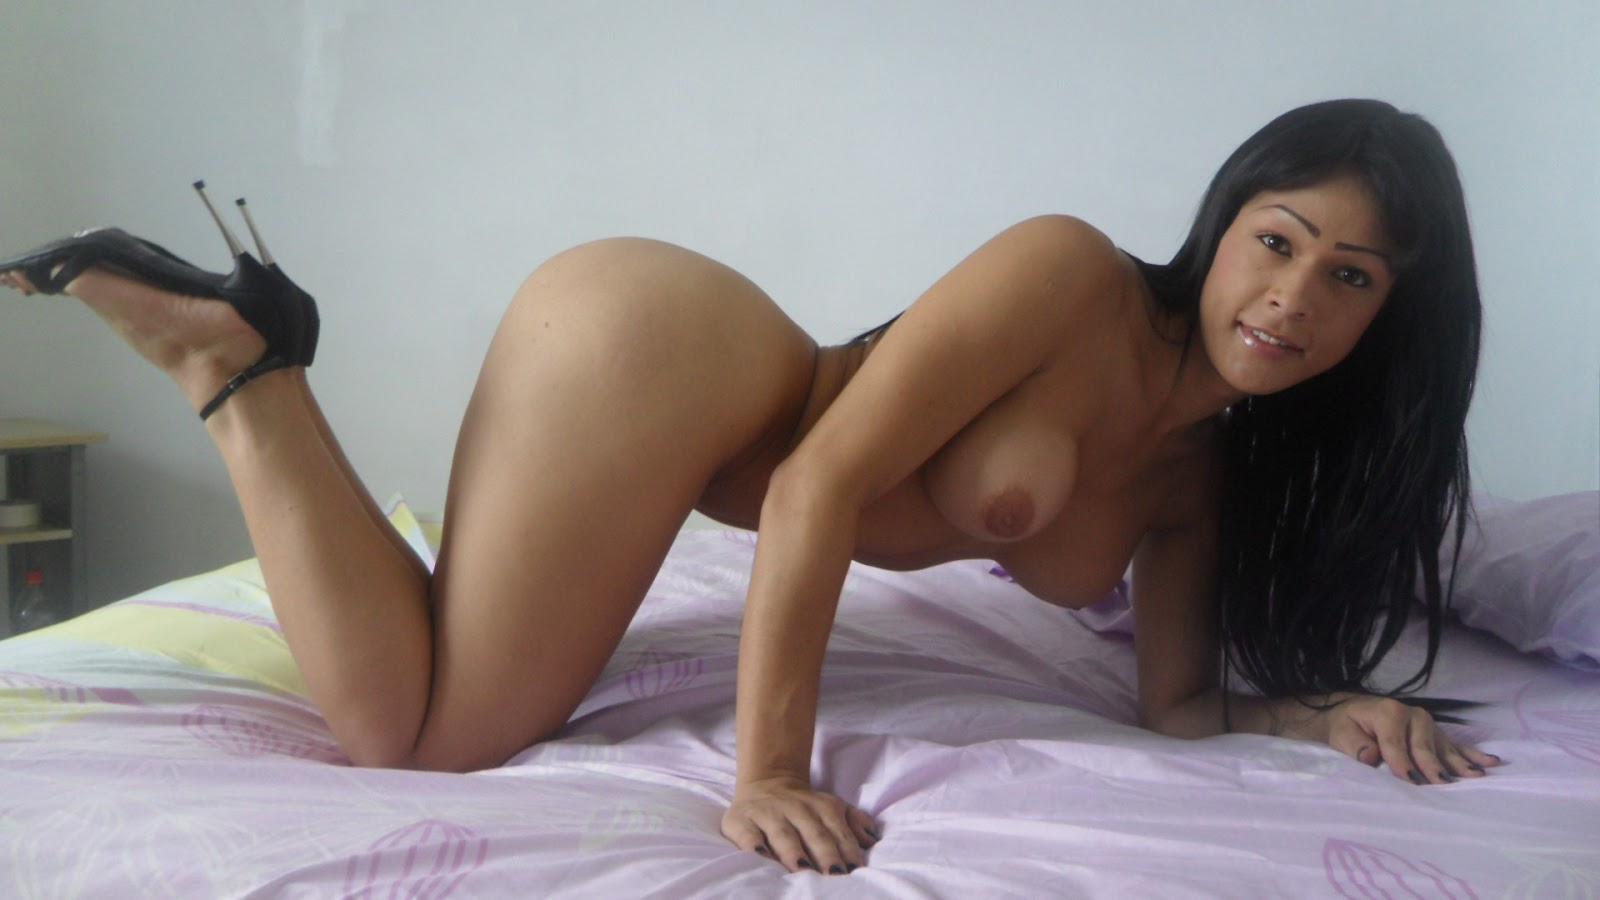 Panama City Girls Escort Videos